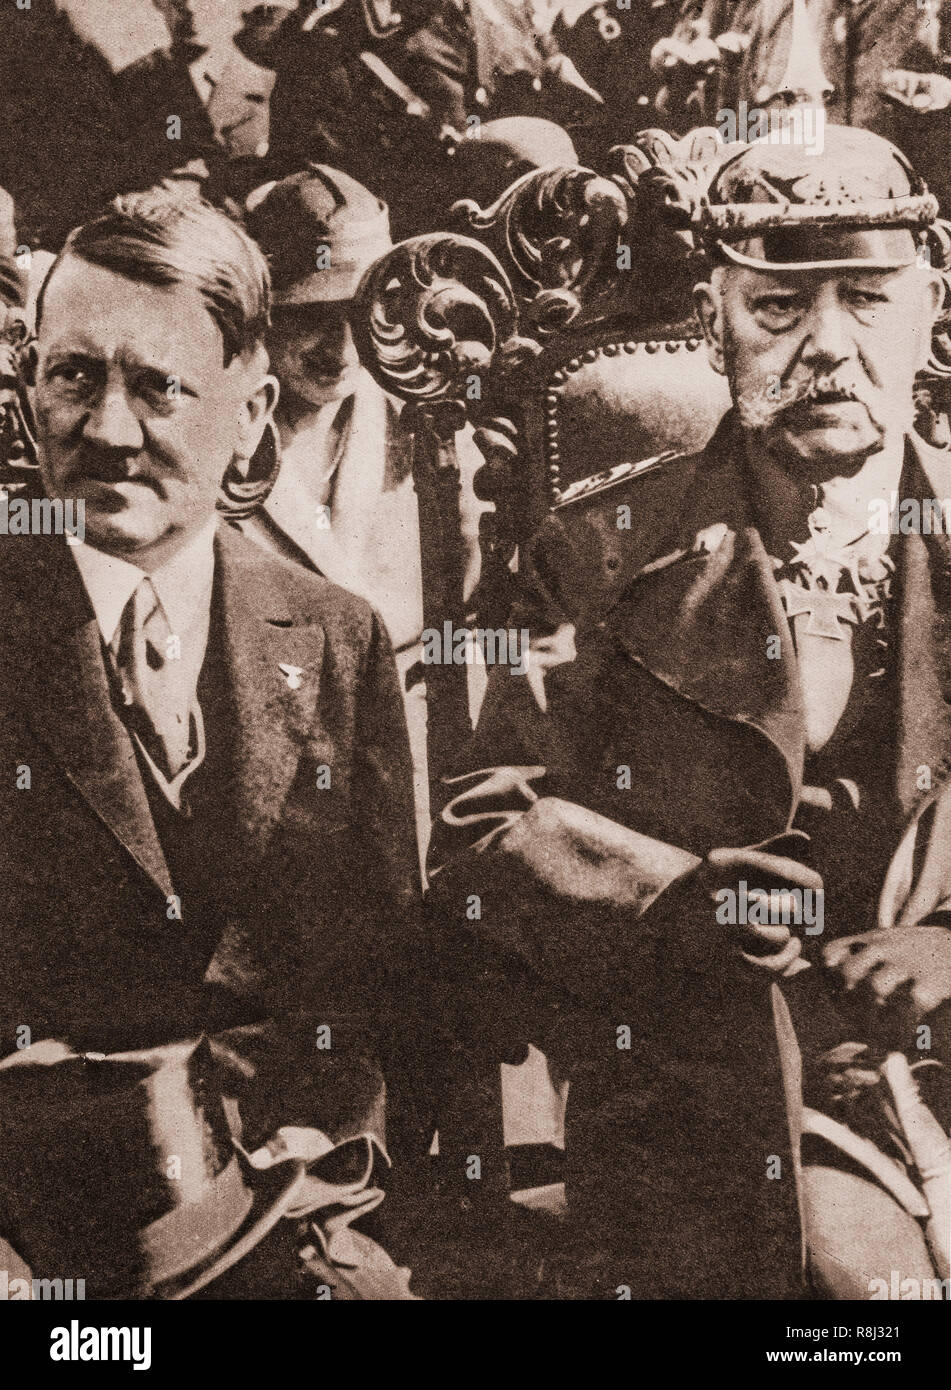 President Paul von Hindenburg and Adolf Hitler on January 30th, 1933, when the latter was appointed chancellor in a coalition government. Hitler and the Nazi Party won 37 per cent of the total vote in the 1932 German election which made it the largest party in the Reichstag. In March the Reichstag conferred dictatorial powers on him for four years, but the following year, Hitler eliminated about a hundred rivals; in August 1934 Hitler was proclaimed Führer of the German Reich, head of state and commander of the armed forces, giving him dictatorial power over the country. - Stock Image